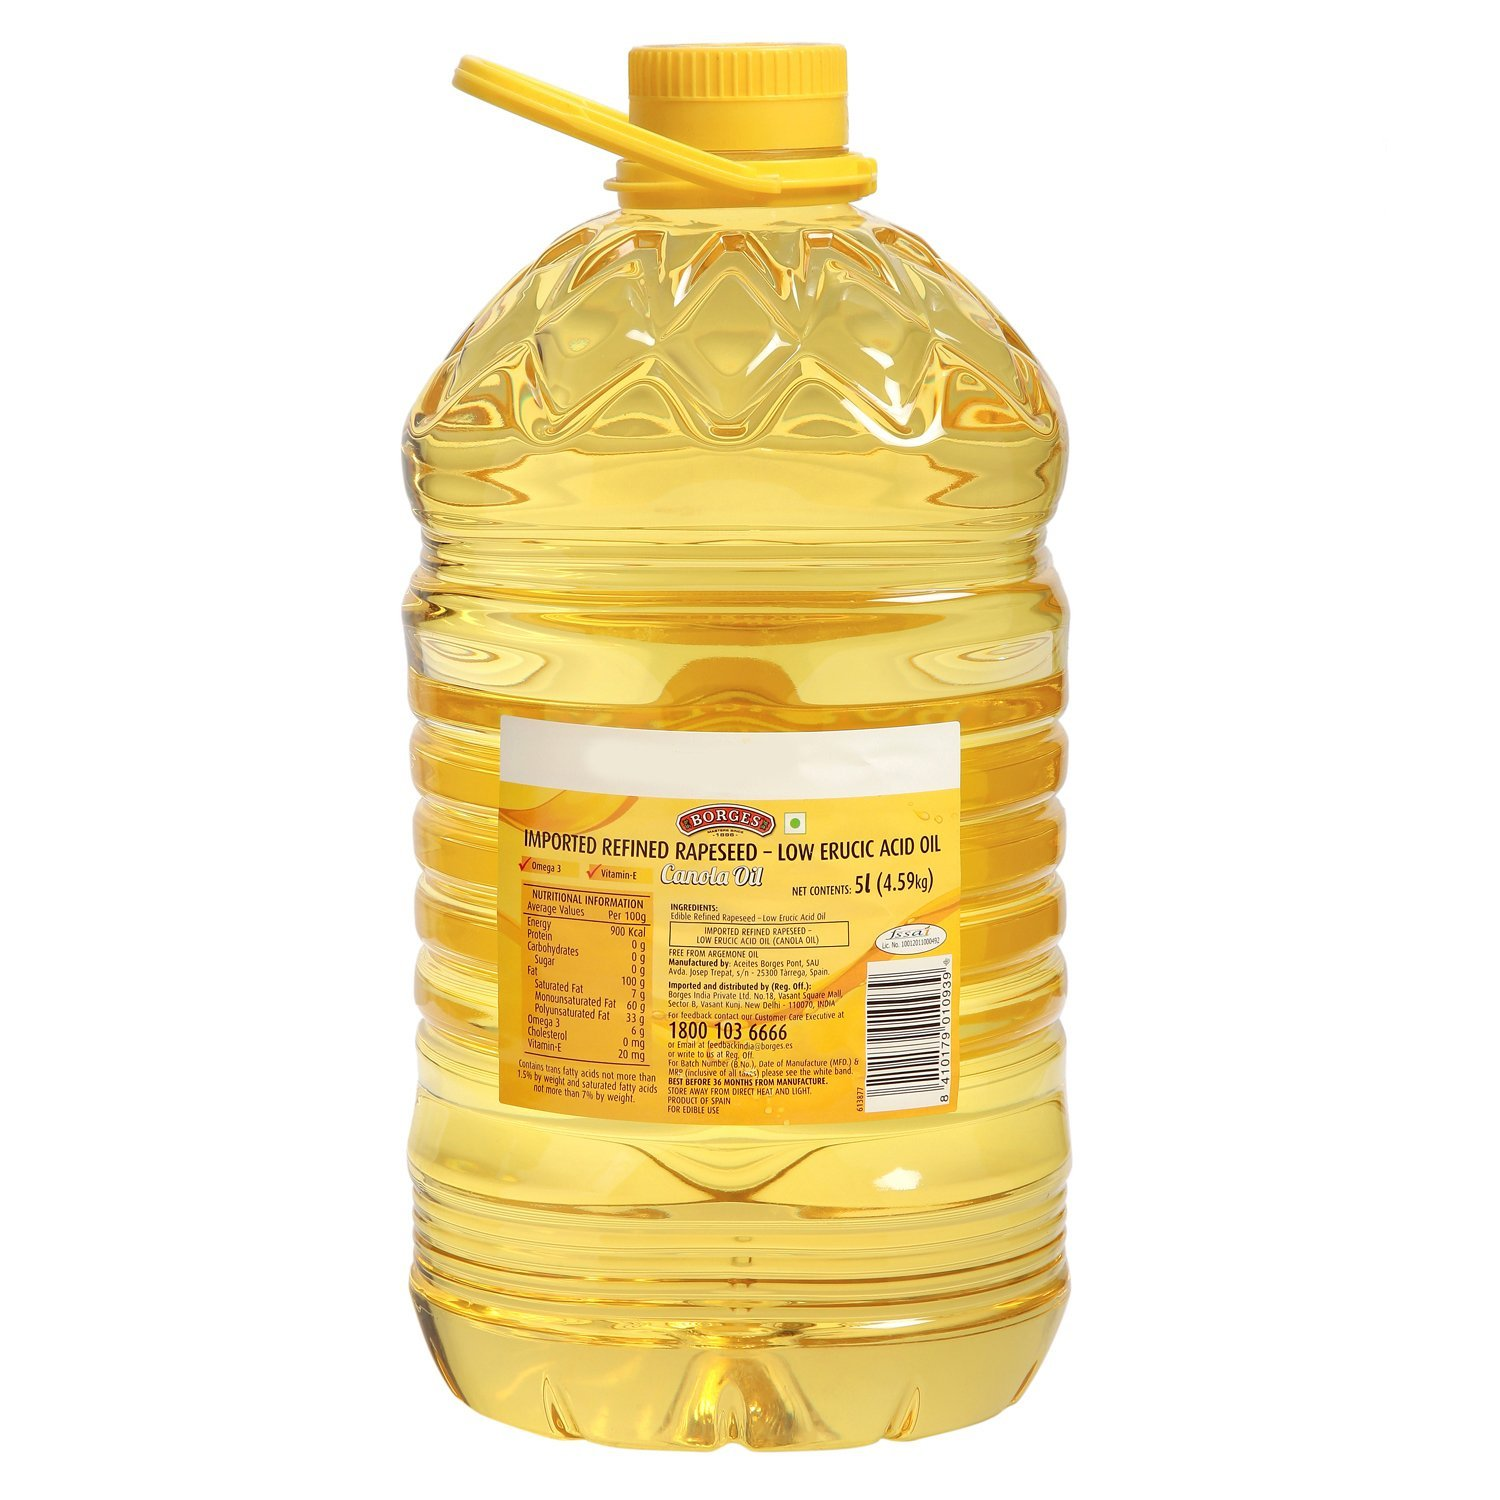 100% Refined Rapeseed Oil